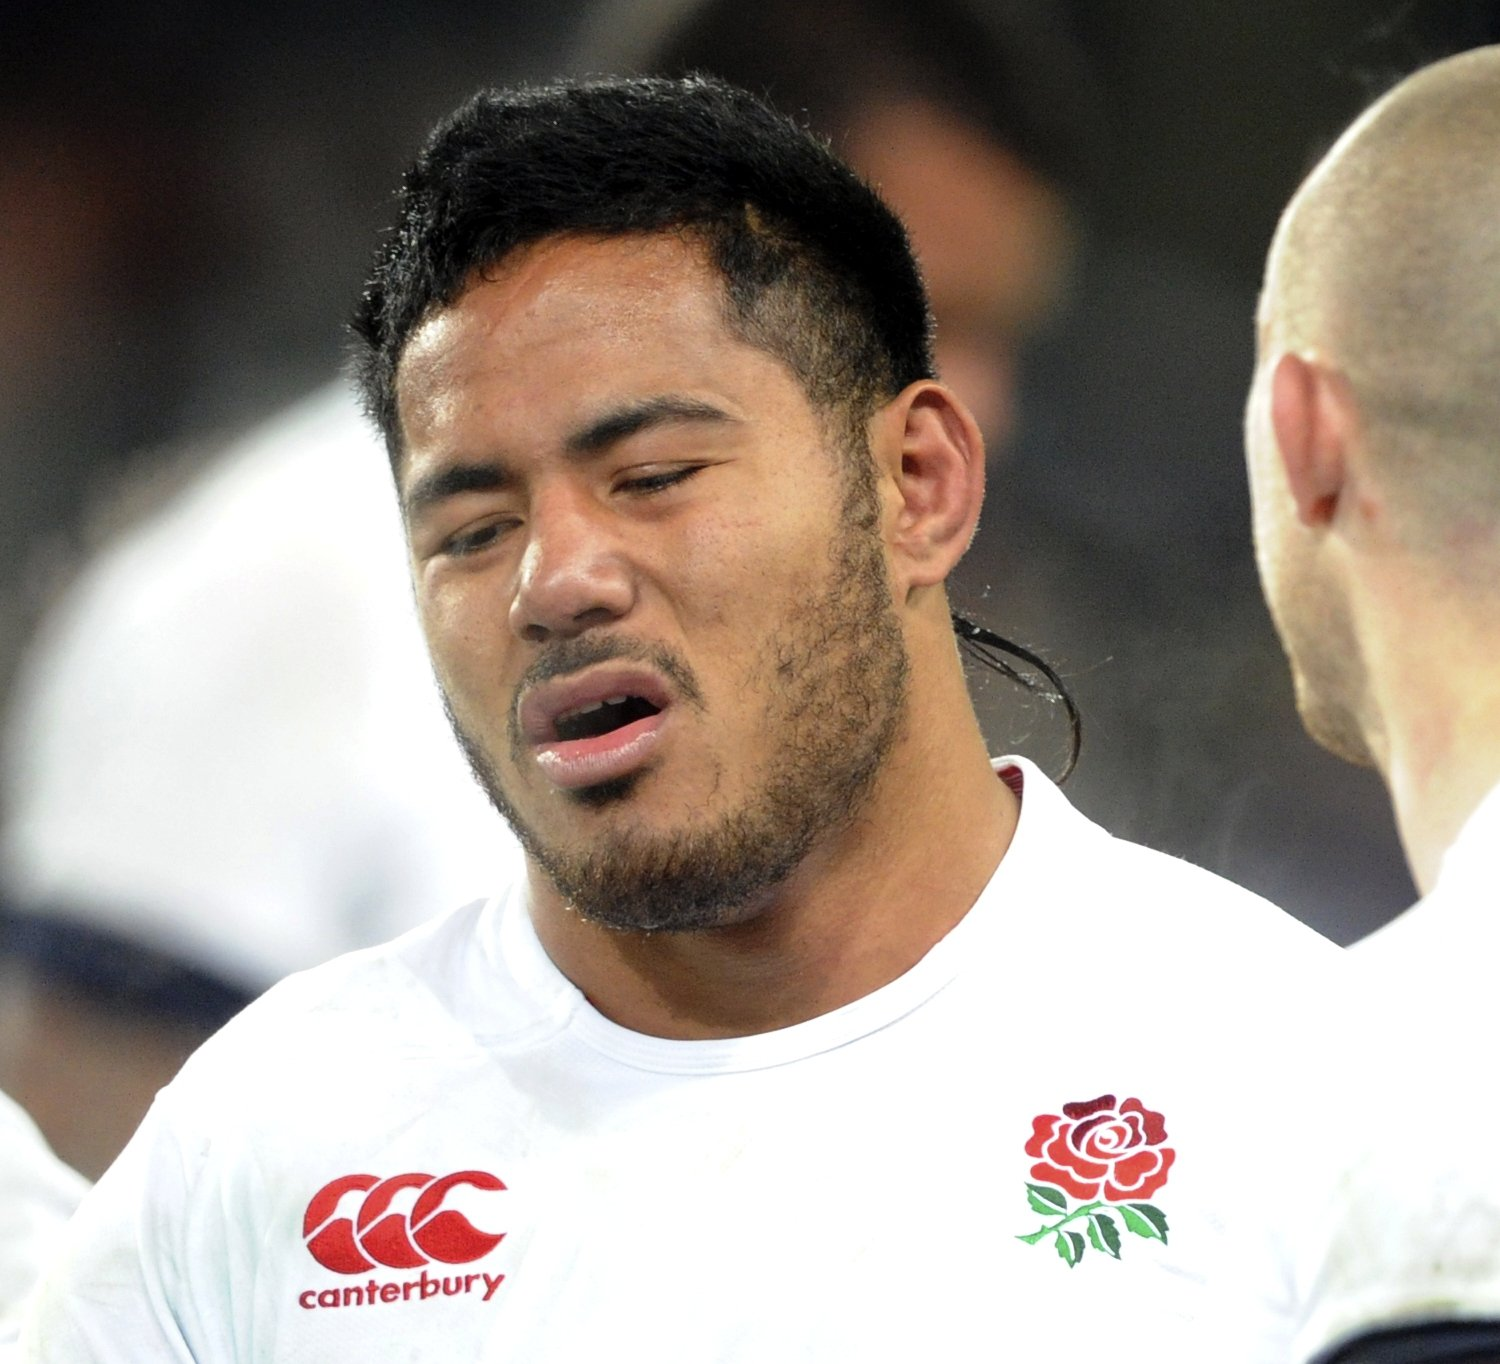 Leicester Centre Manu Tuilagi Is Tackled: Manu Tuilagi Will Miss Rugby World Cup Following Assault